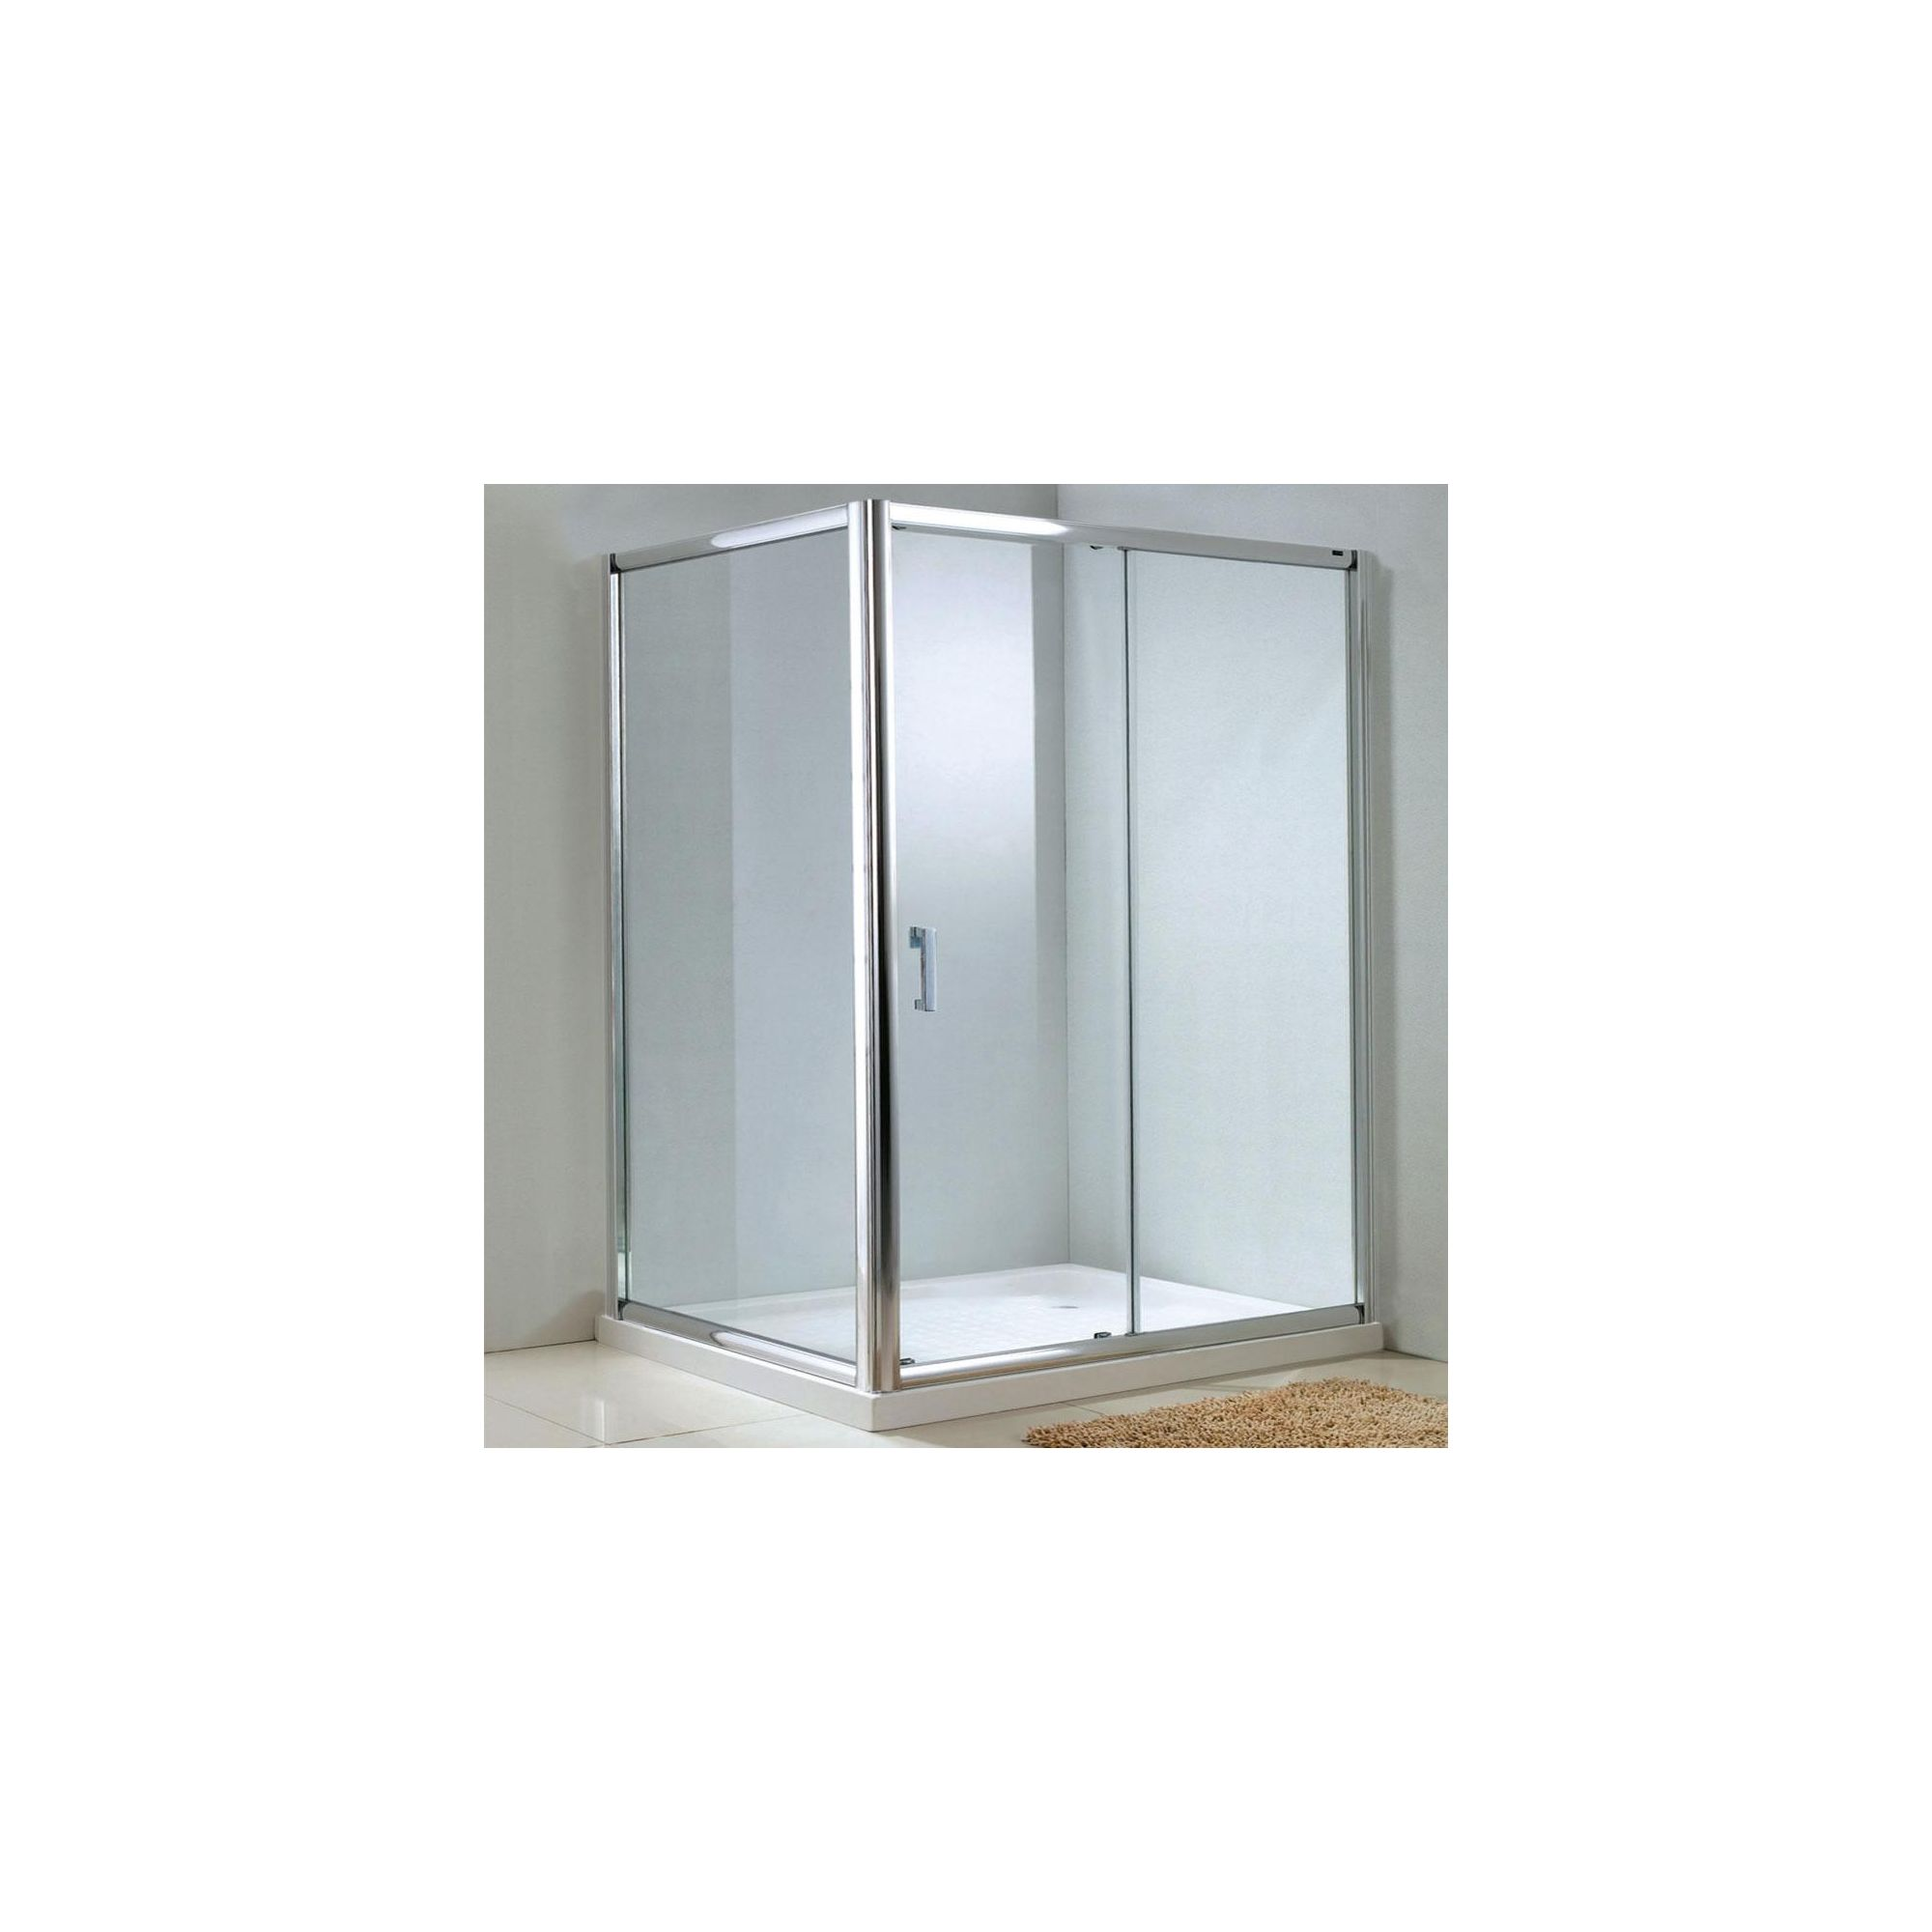 Duchy Style Single Sliding Door Shower Enclosure, 1200mm x 800mm, 6mm Glass, Low Profile Tray at Tesco Direct